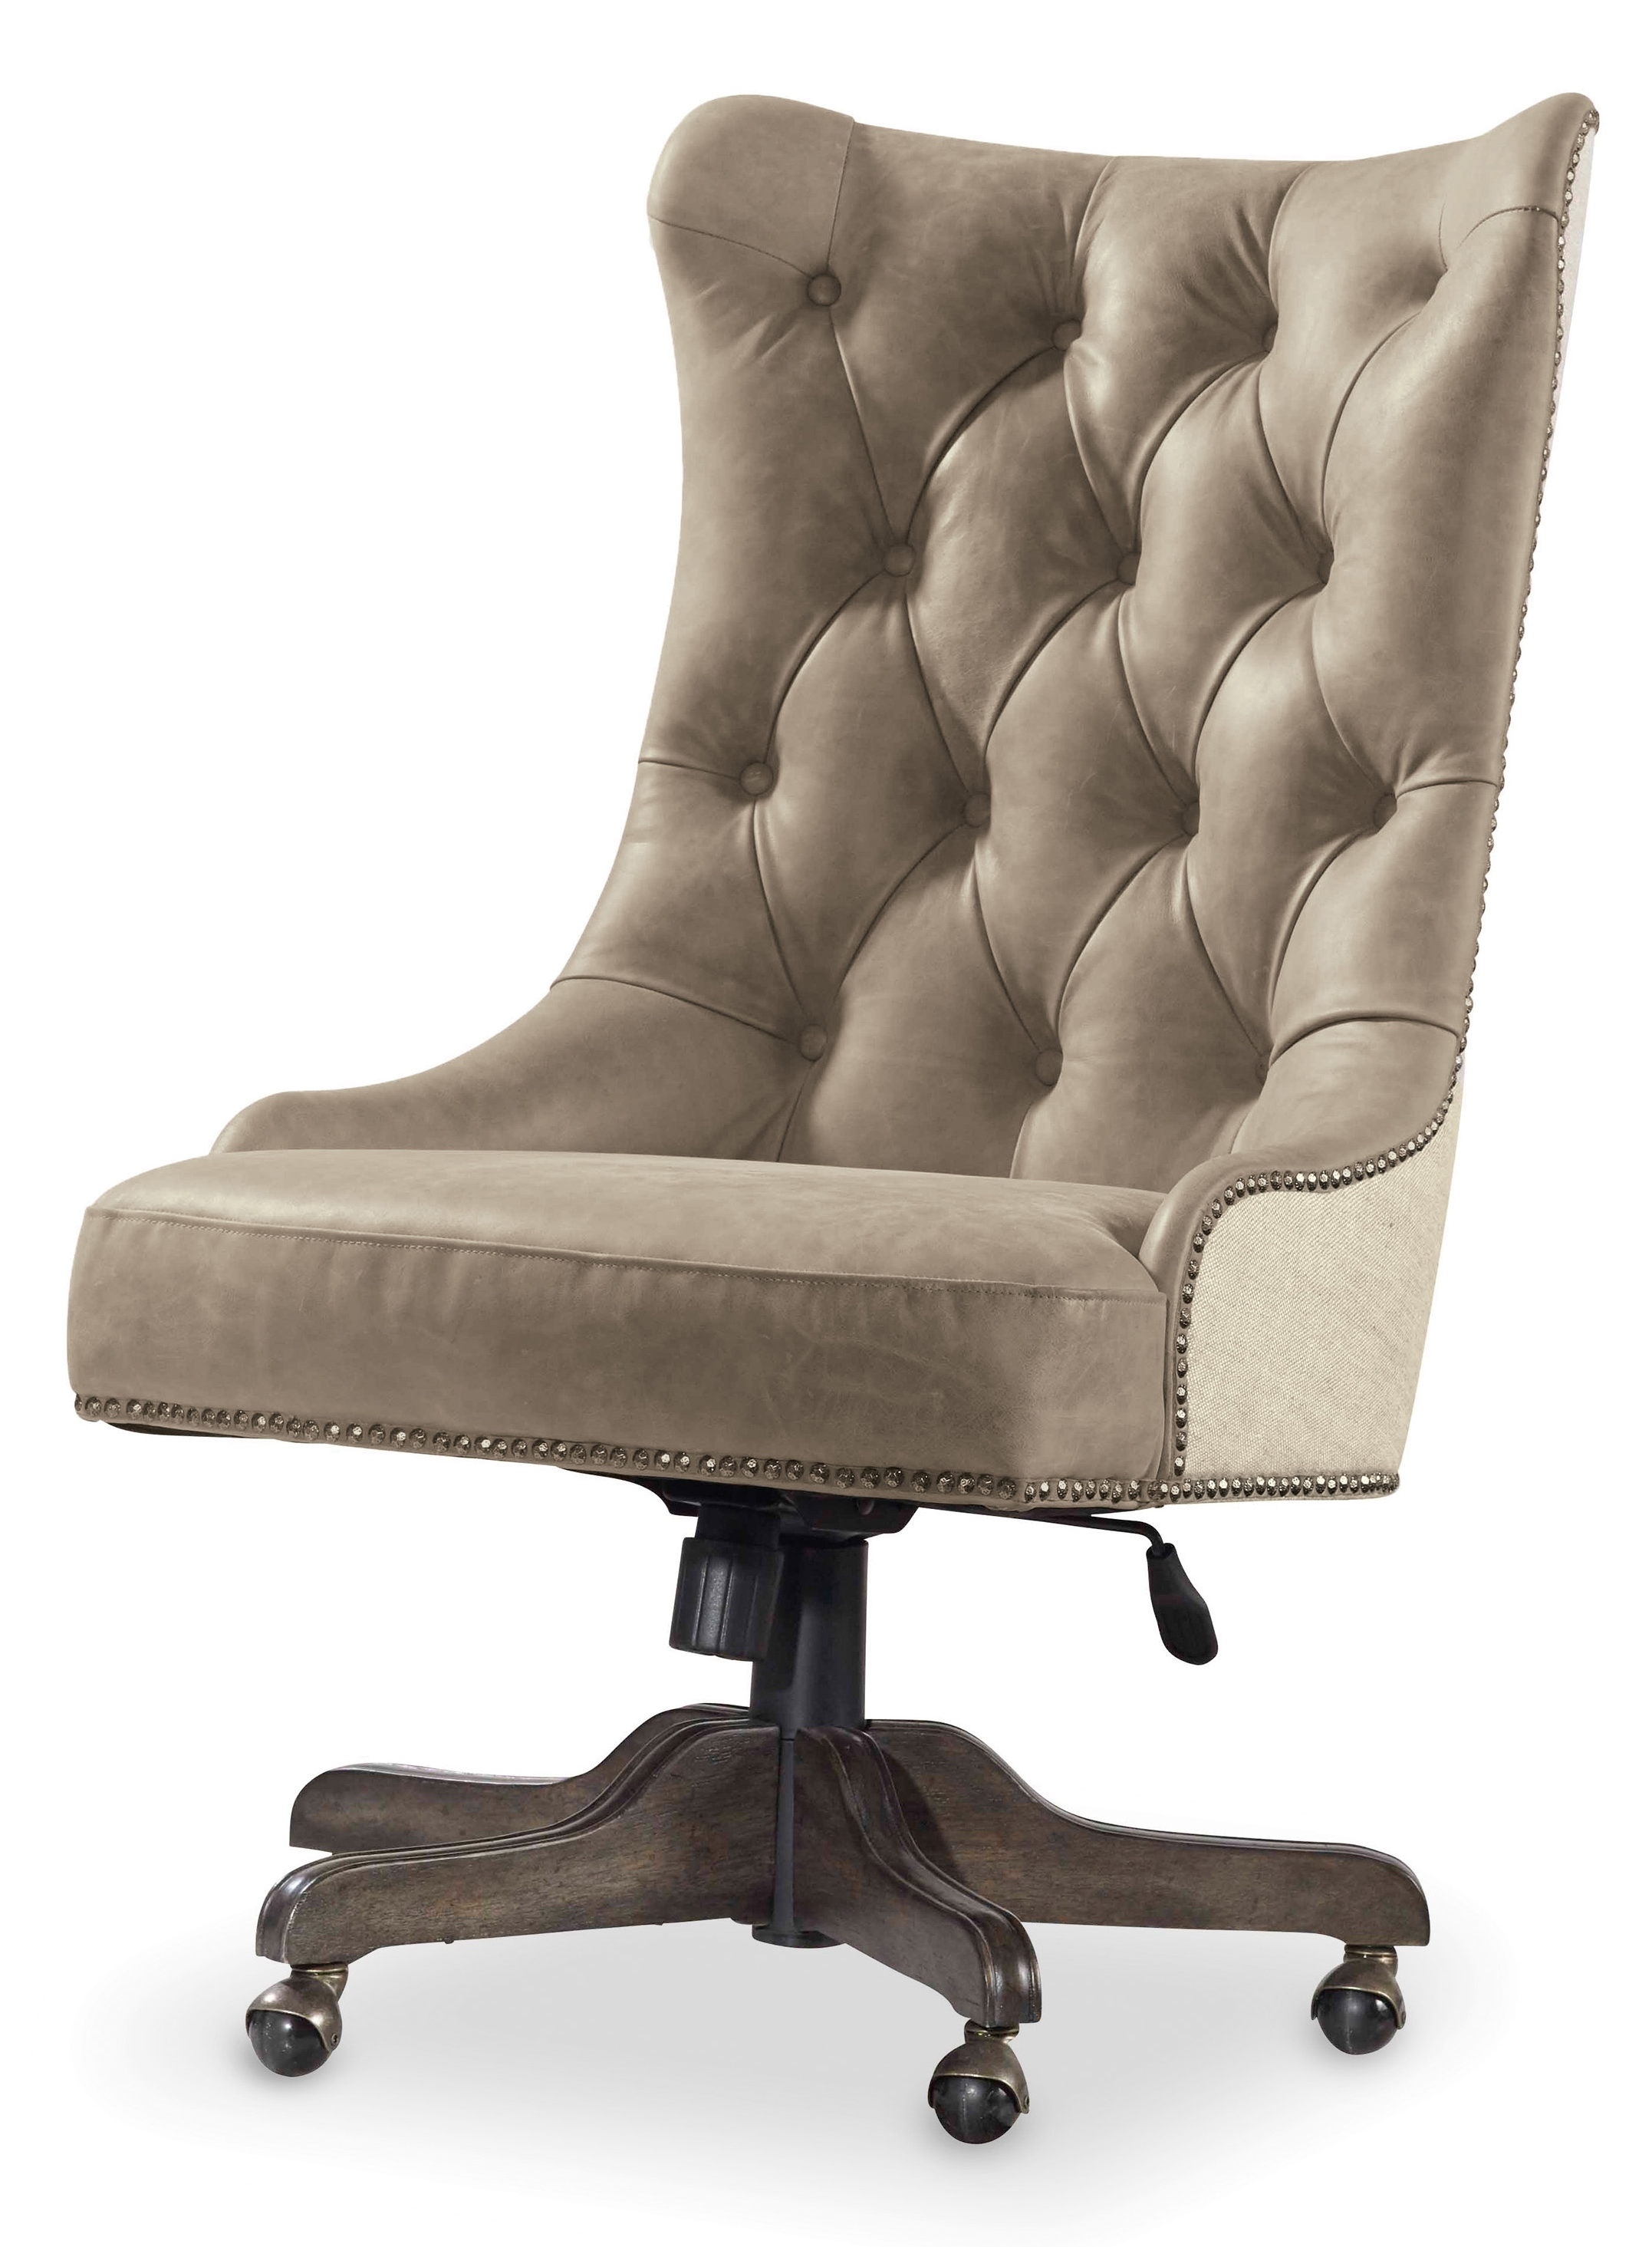 Office : Hooker Furniture Vintage West Executive Desk Chair With For Most Popular Executive Office Swivel Chairs (View 14 of 20)